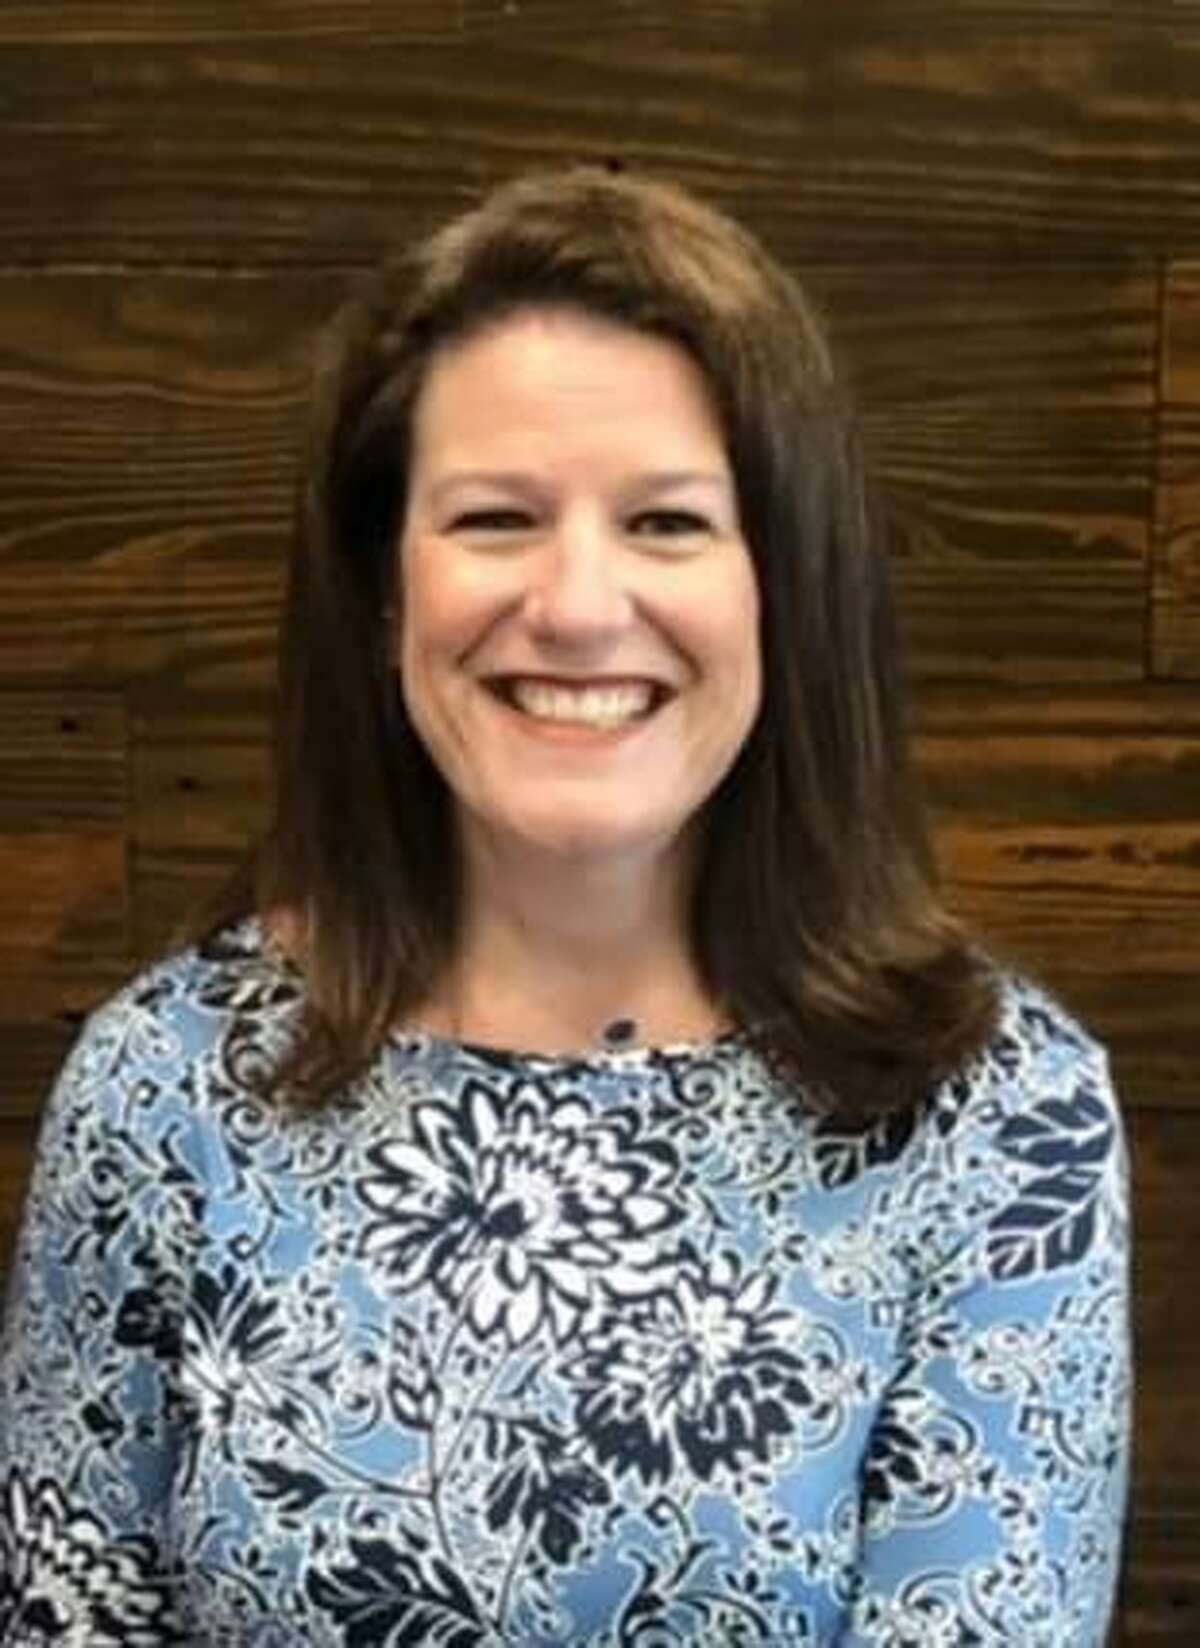 Memorial Parkway Junior High Principal Emily Craig has been named one of two Katy Independent School District Principals of the Year.